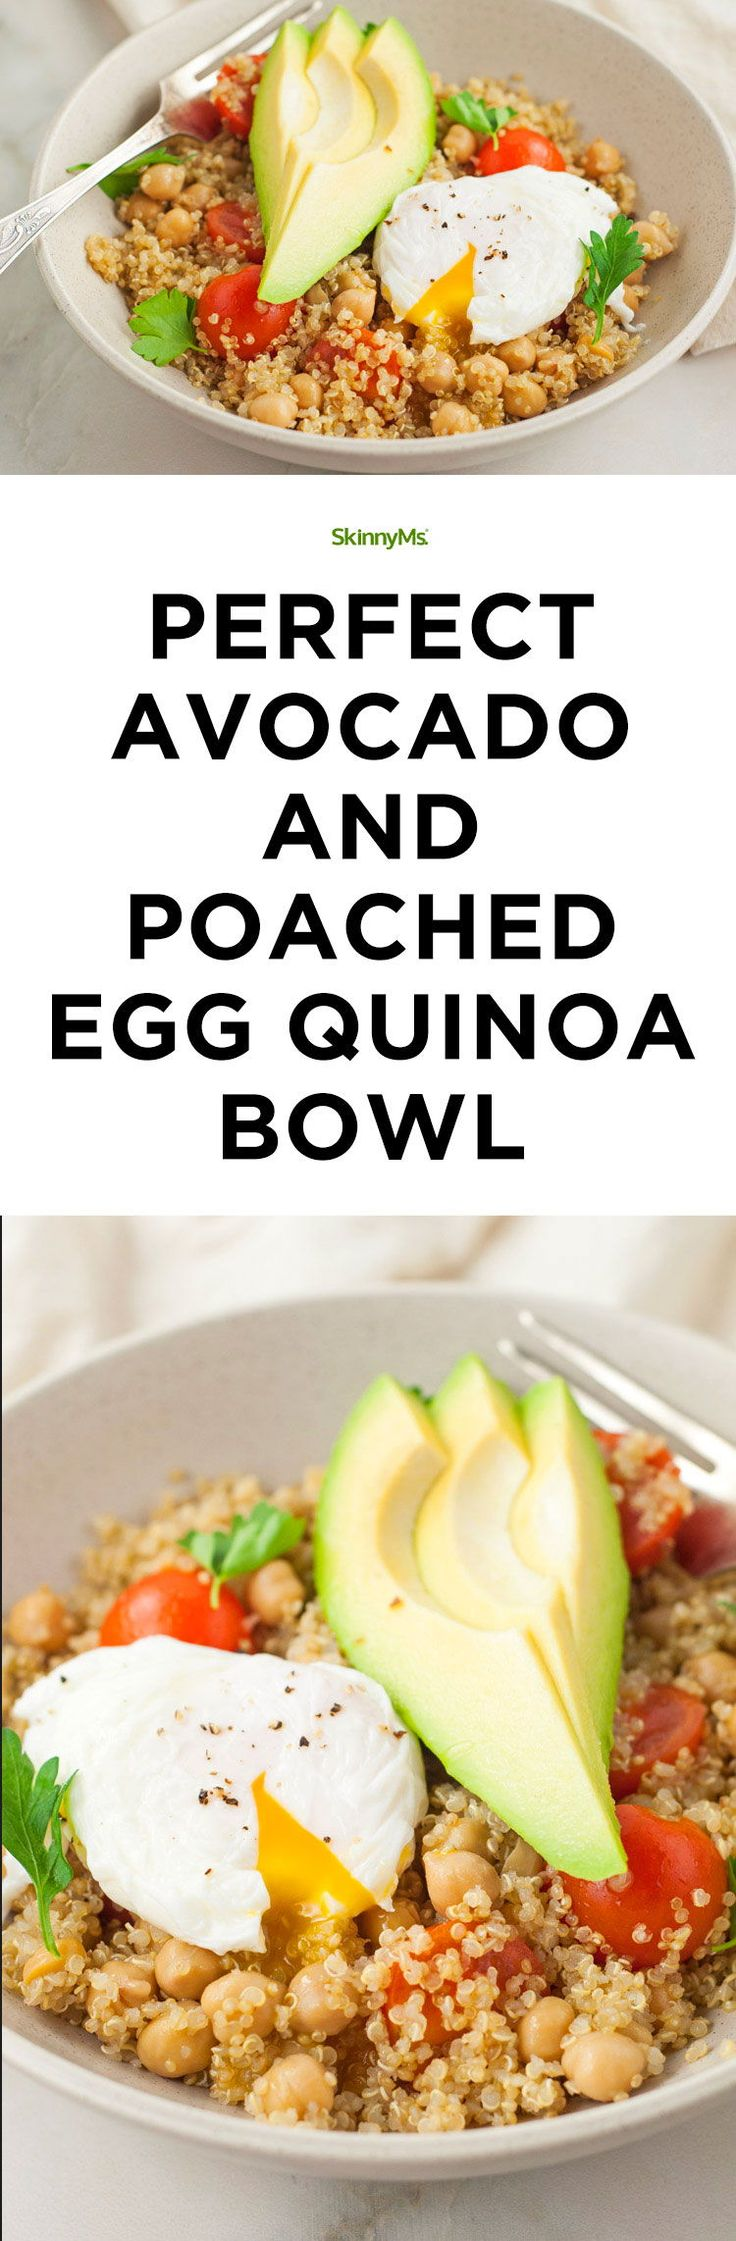 This Avocado and Poached Egg Quinoa Bowl is a filling and satisfying meal, no matter the time of day! #avocado #poachedegg #quinoa #healthy #recipes